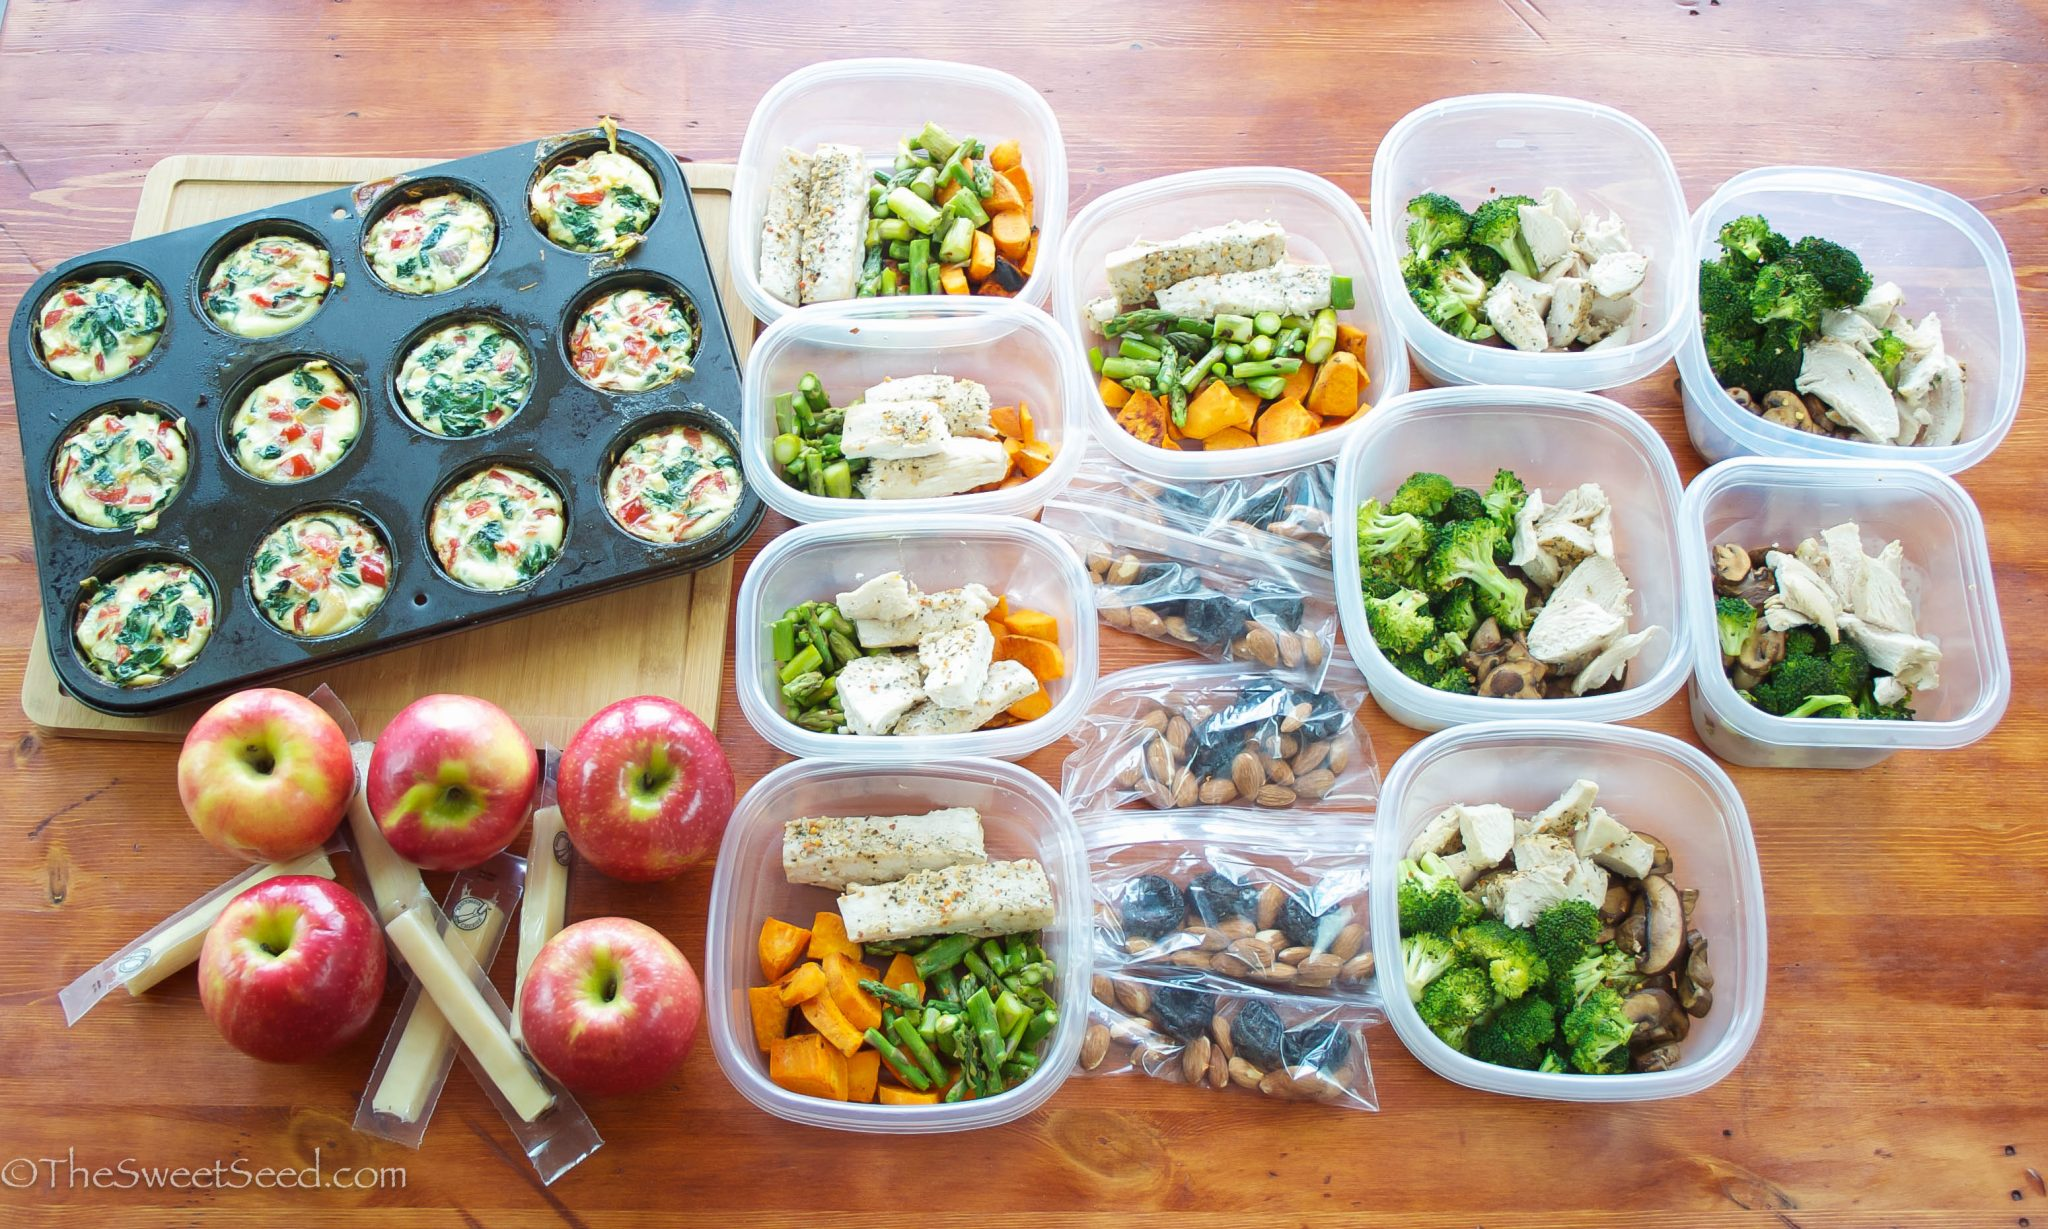 Three Benefits to Meal Prepping